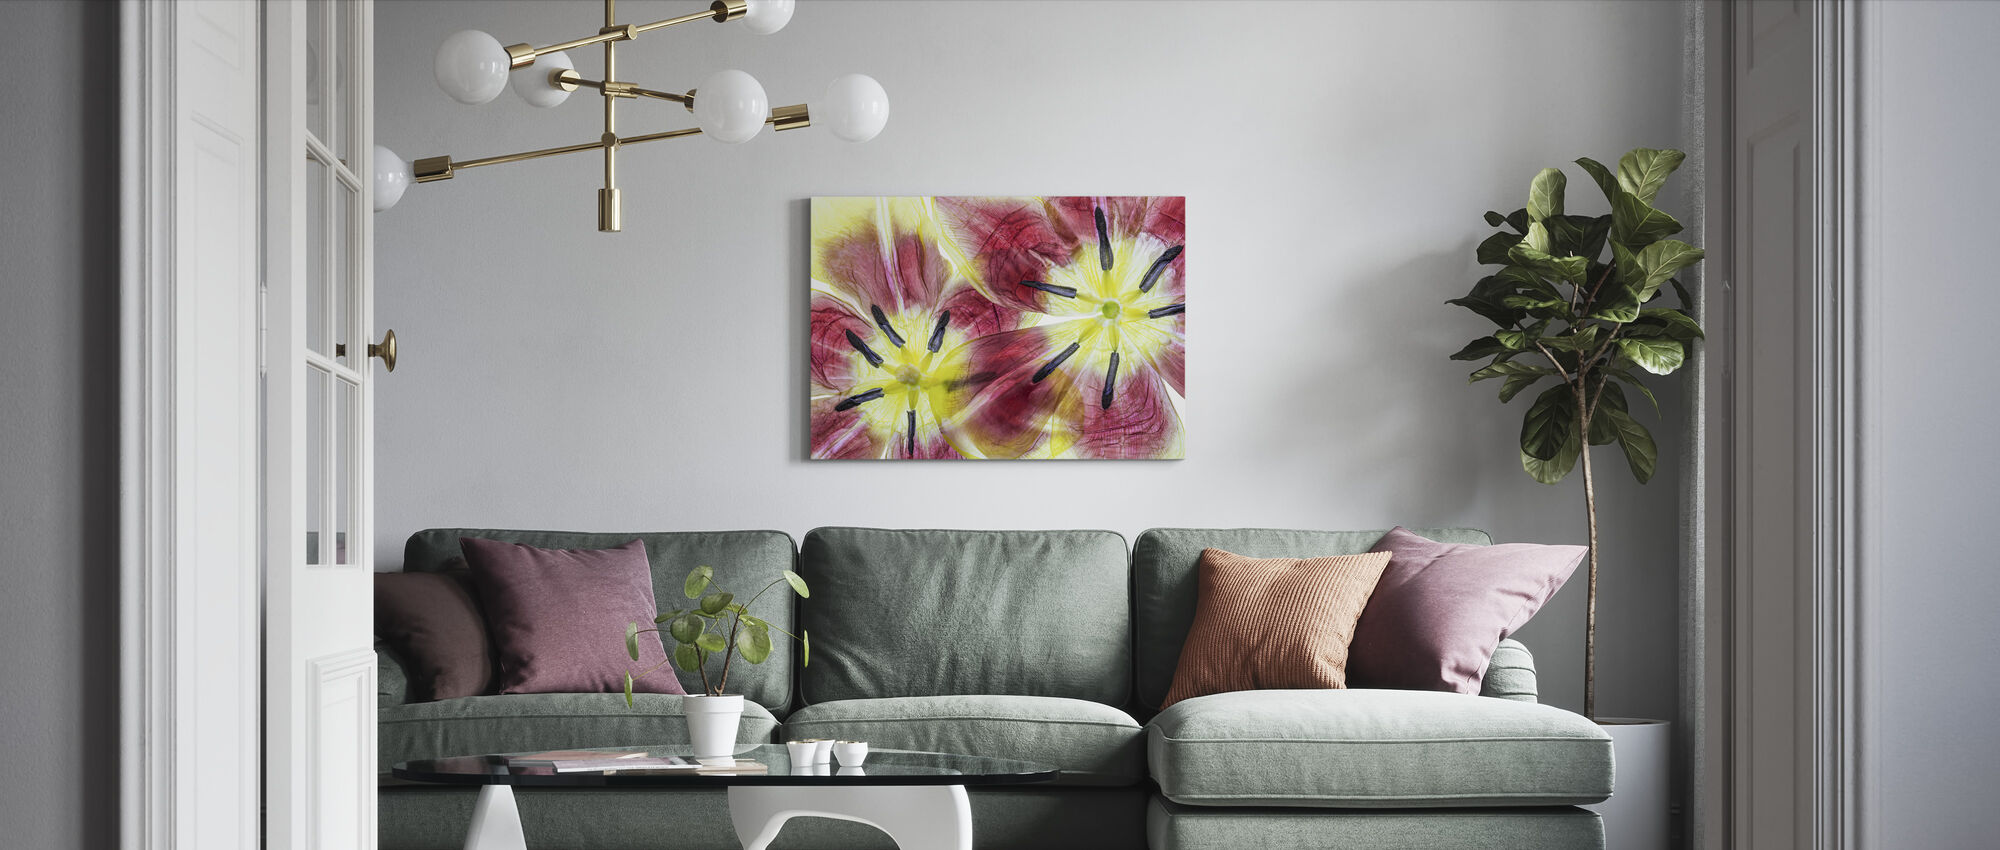 Tulips - Canvas print - Living Room